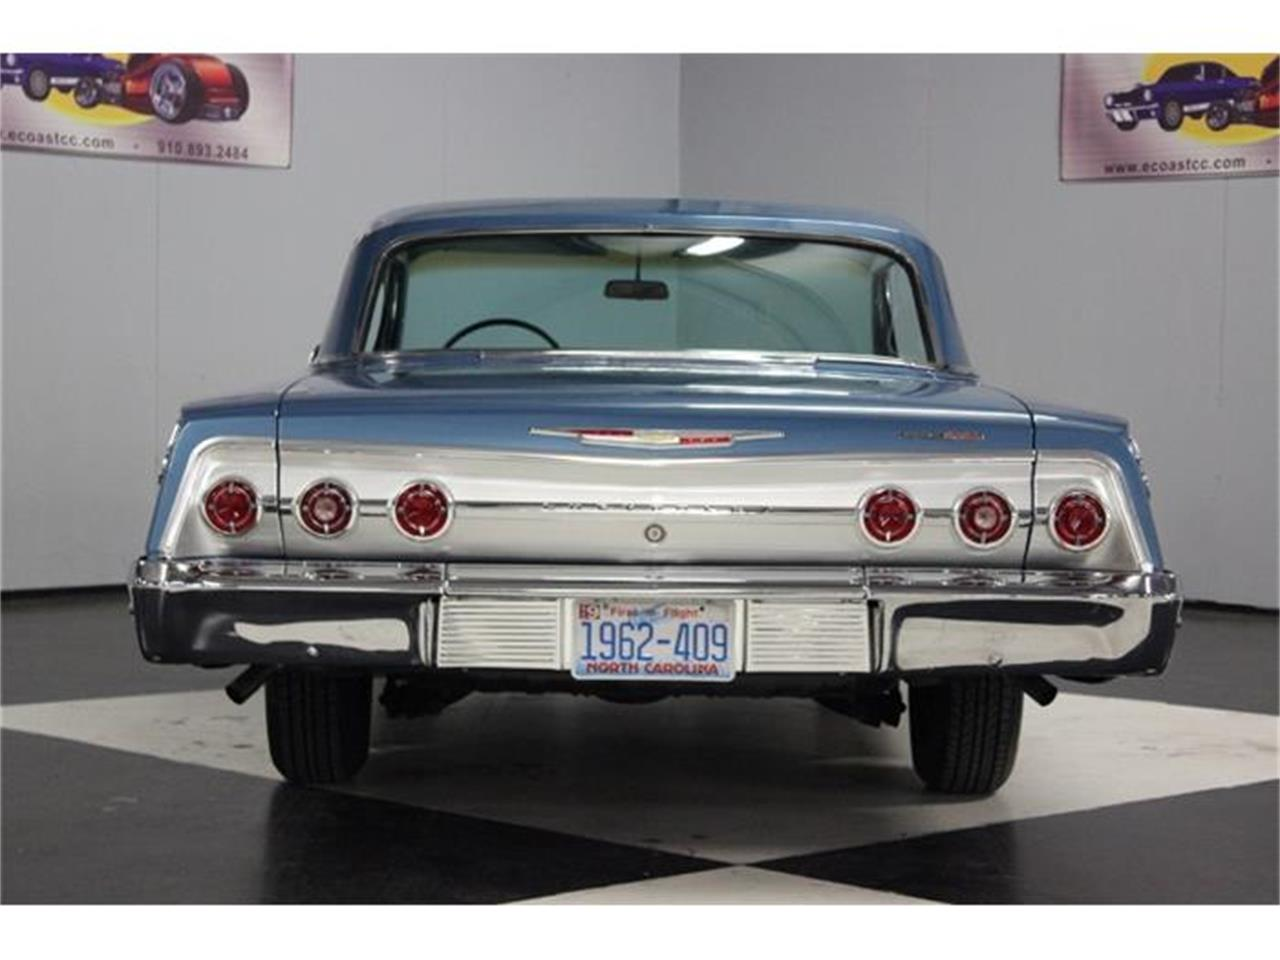 1962 Chevrolet Impala SS (CC-877408) for sale in Lillington, North Carolina